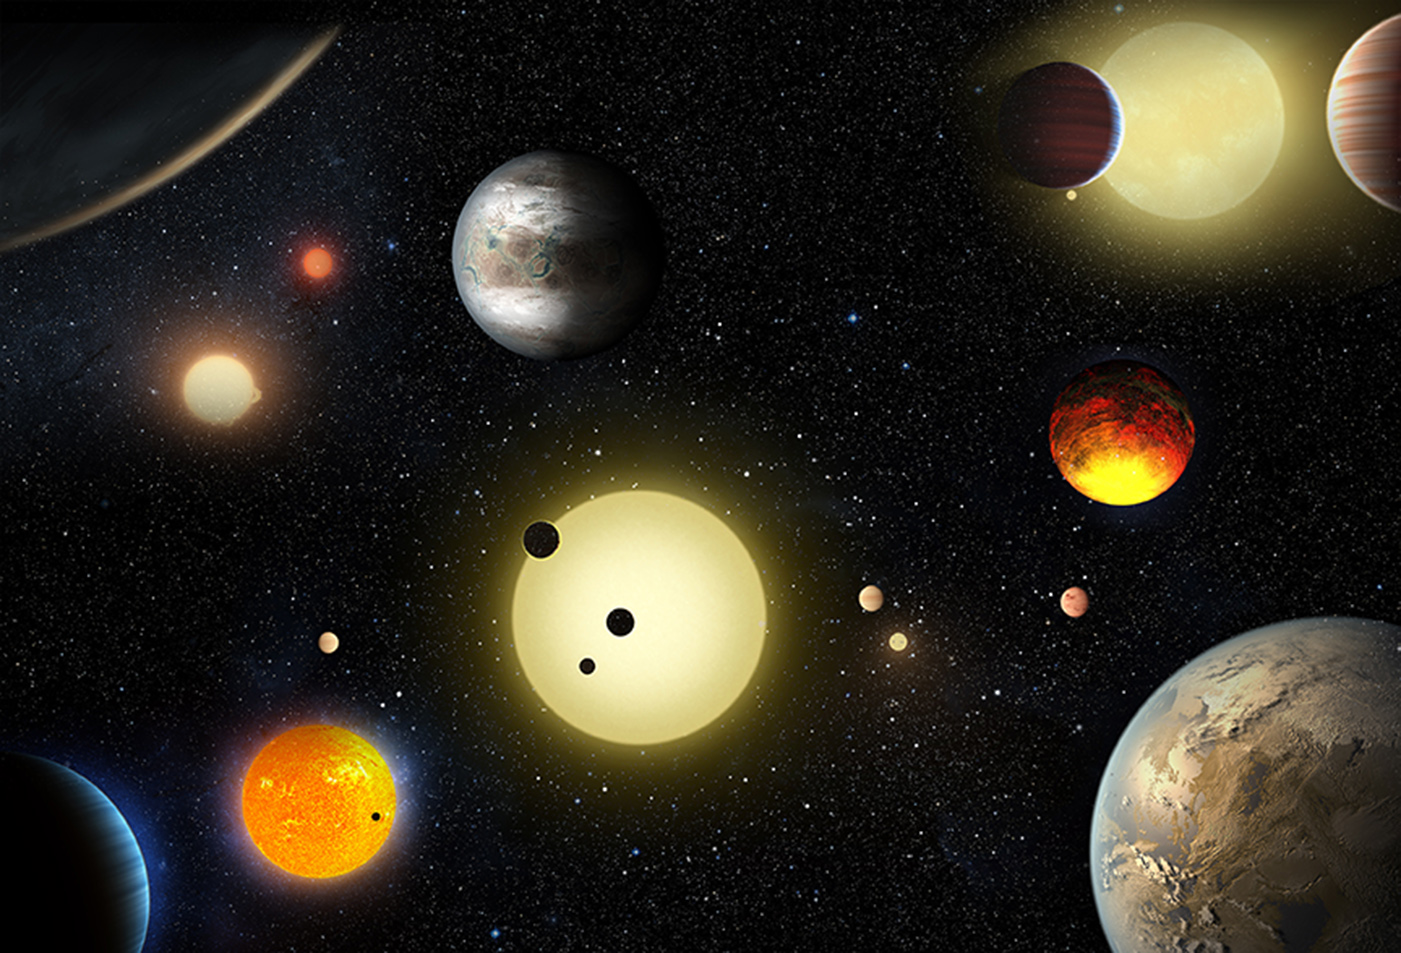 Earlier today, NASA announced that Kepler had confirmed the existence of 1,284 new exoplanets, the most announced at any given time. – Image Credit: NASA